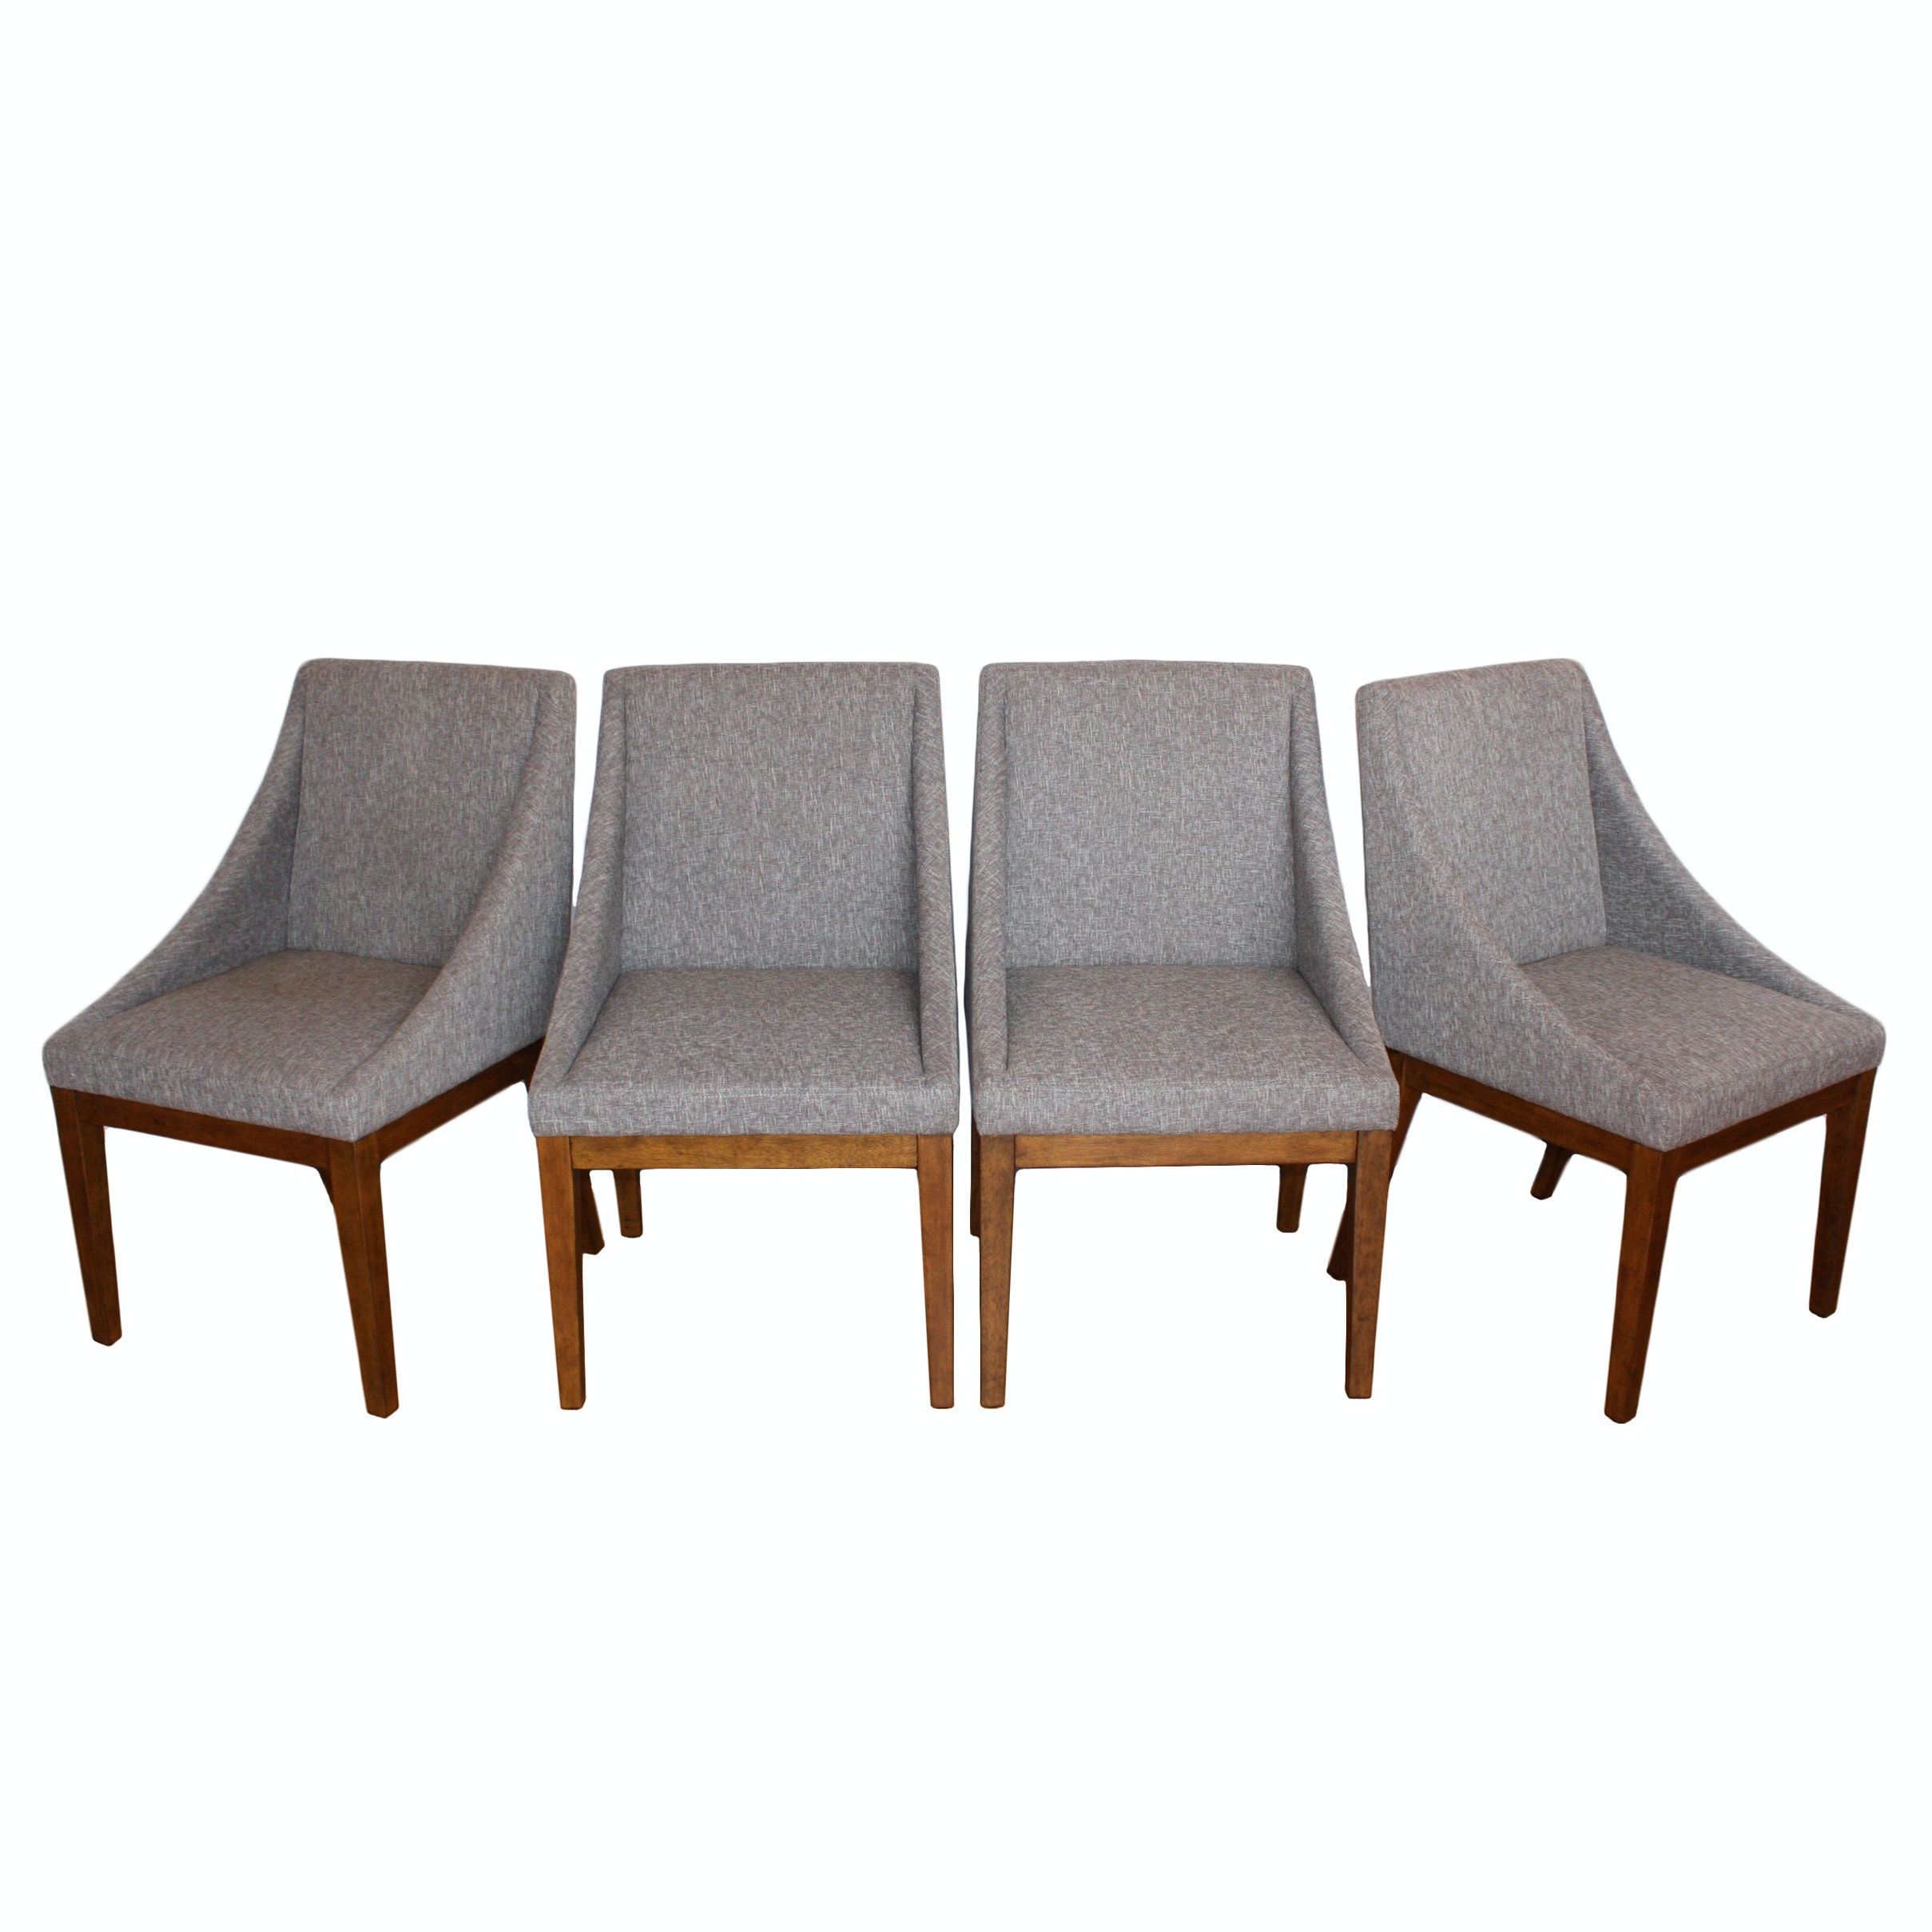 Set of Modern Style Dining Chairs by West Elm